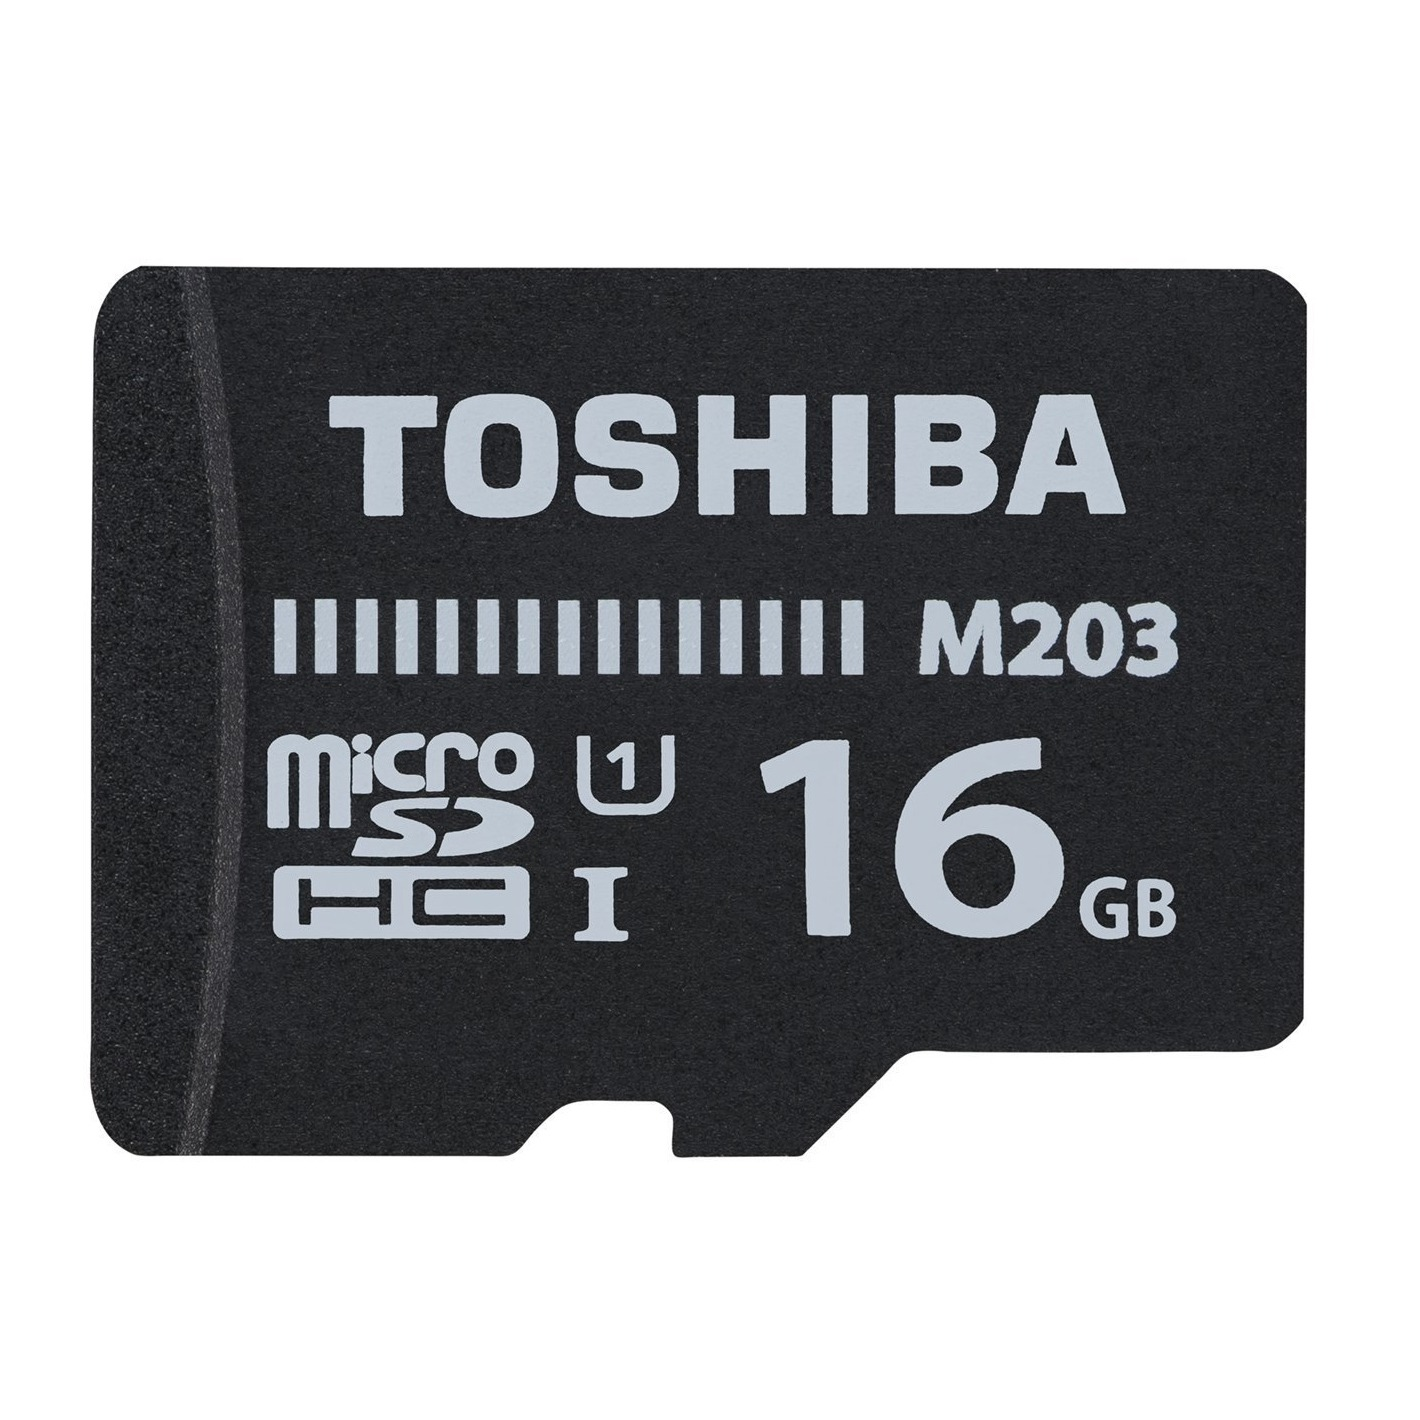 Korting Toshiba MicroSD Class 10 High Speed M203 16GB micro sd kaart